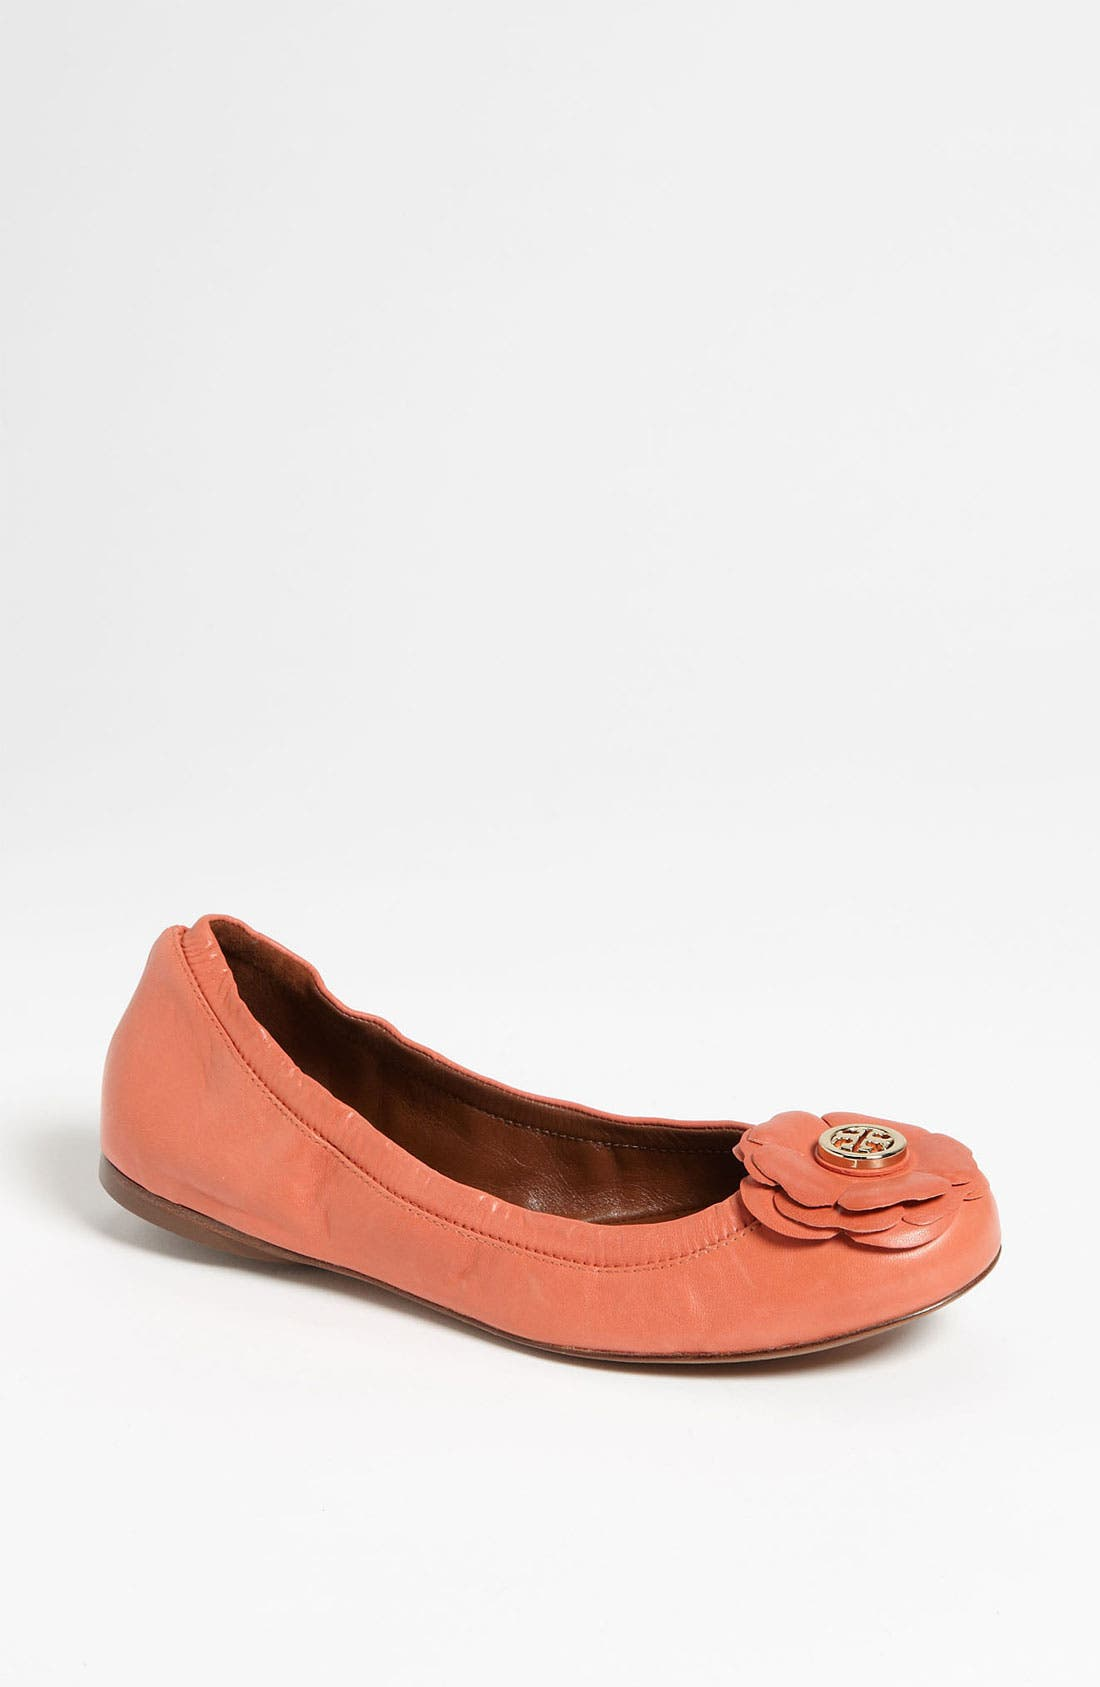 Alternate Image 1 Selected - Tory Burch 'Shelby' Flat